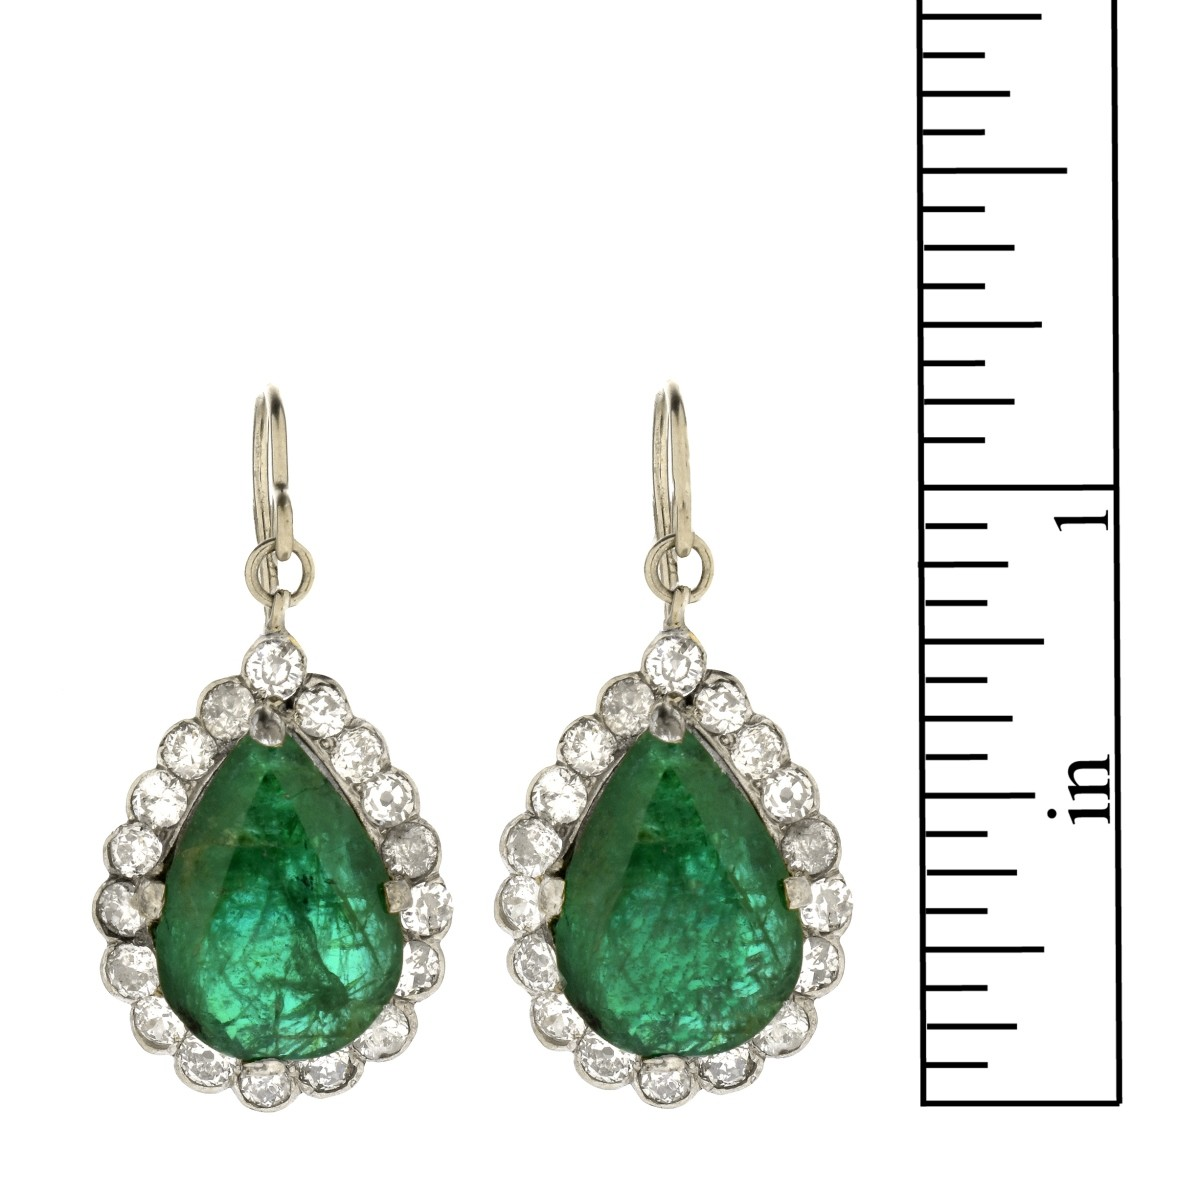 GIA Emerald and Diamond Earrings